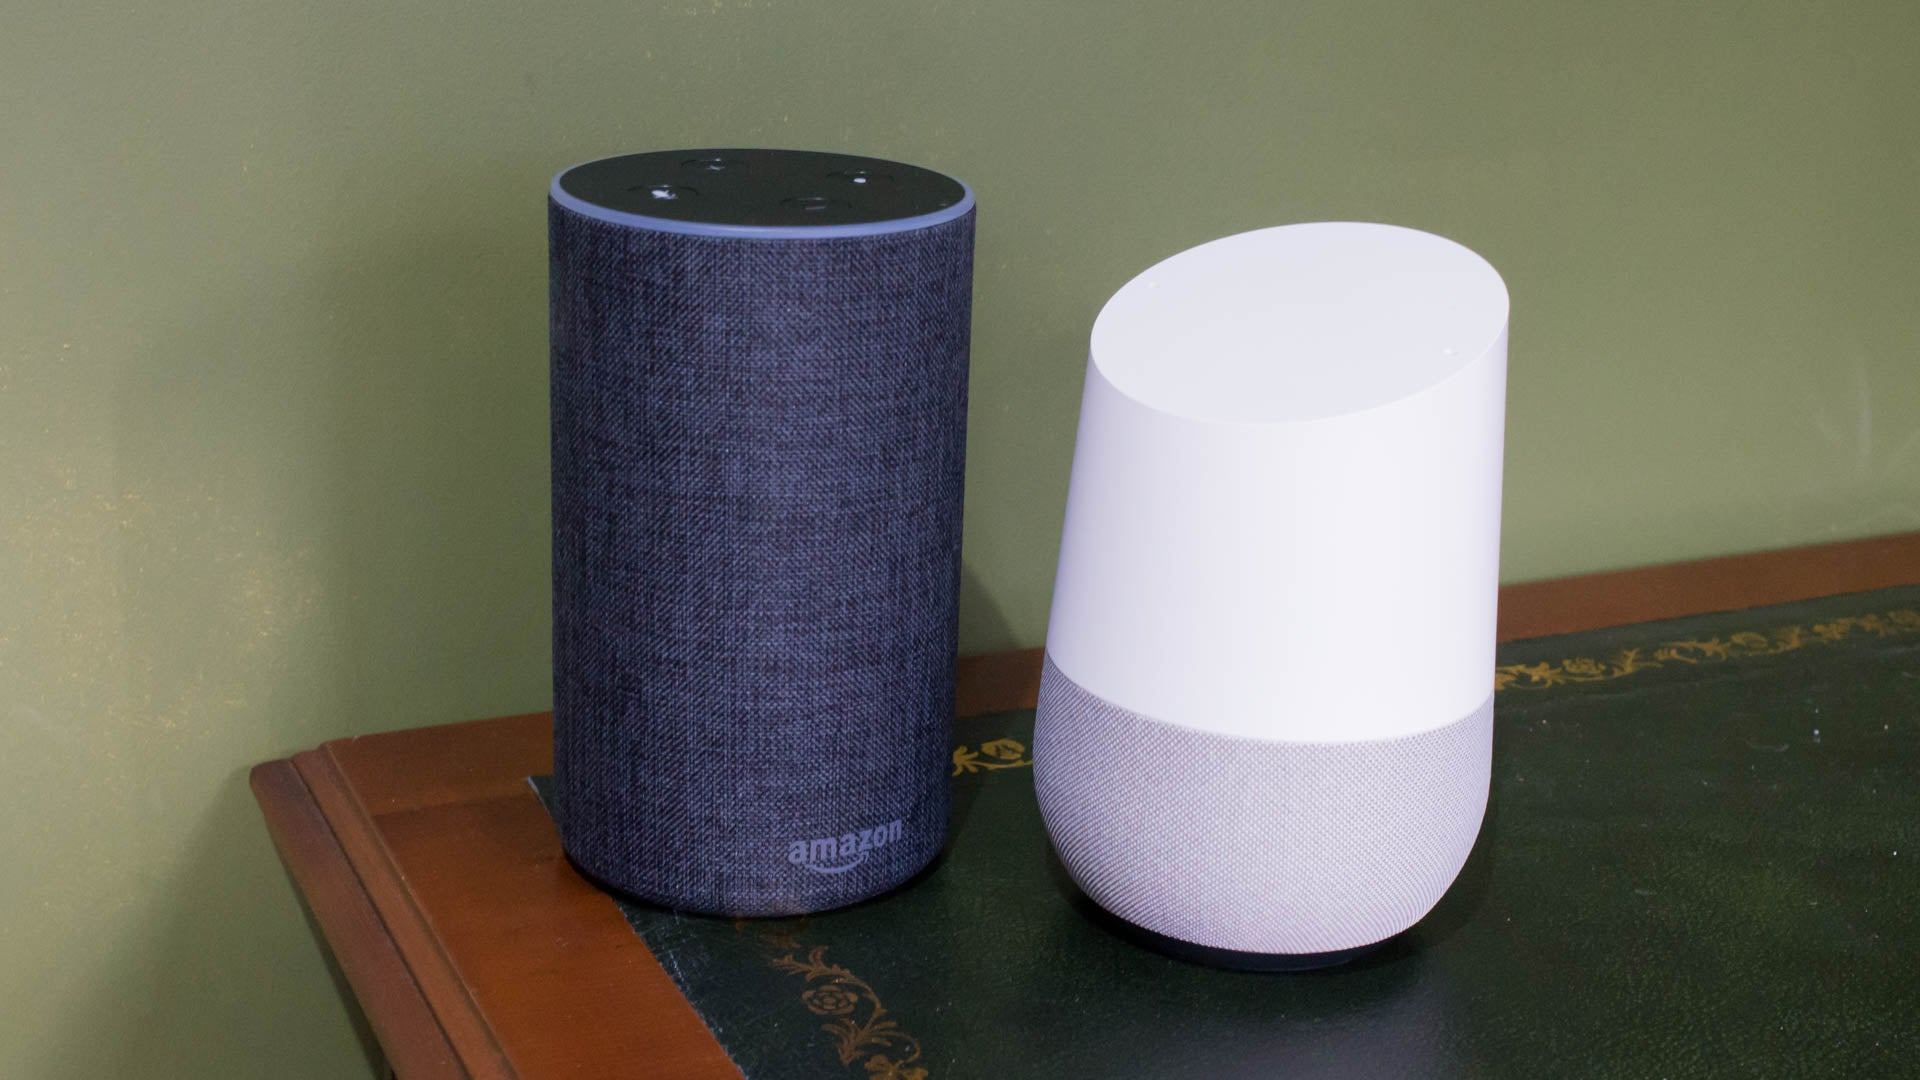 daded8a2f76ec0 Google Home vs Amazon Echo: Which is the best smart speaker? | Trusted  Reviews